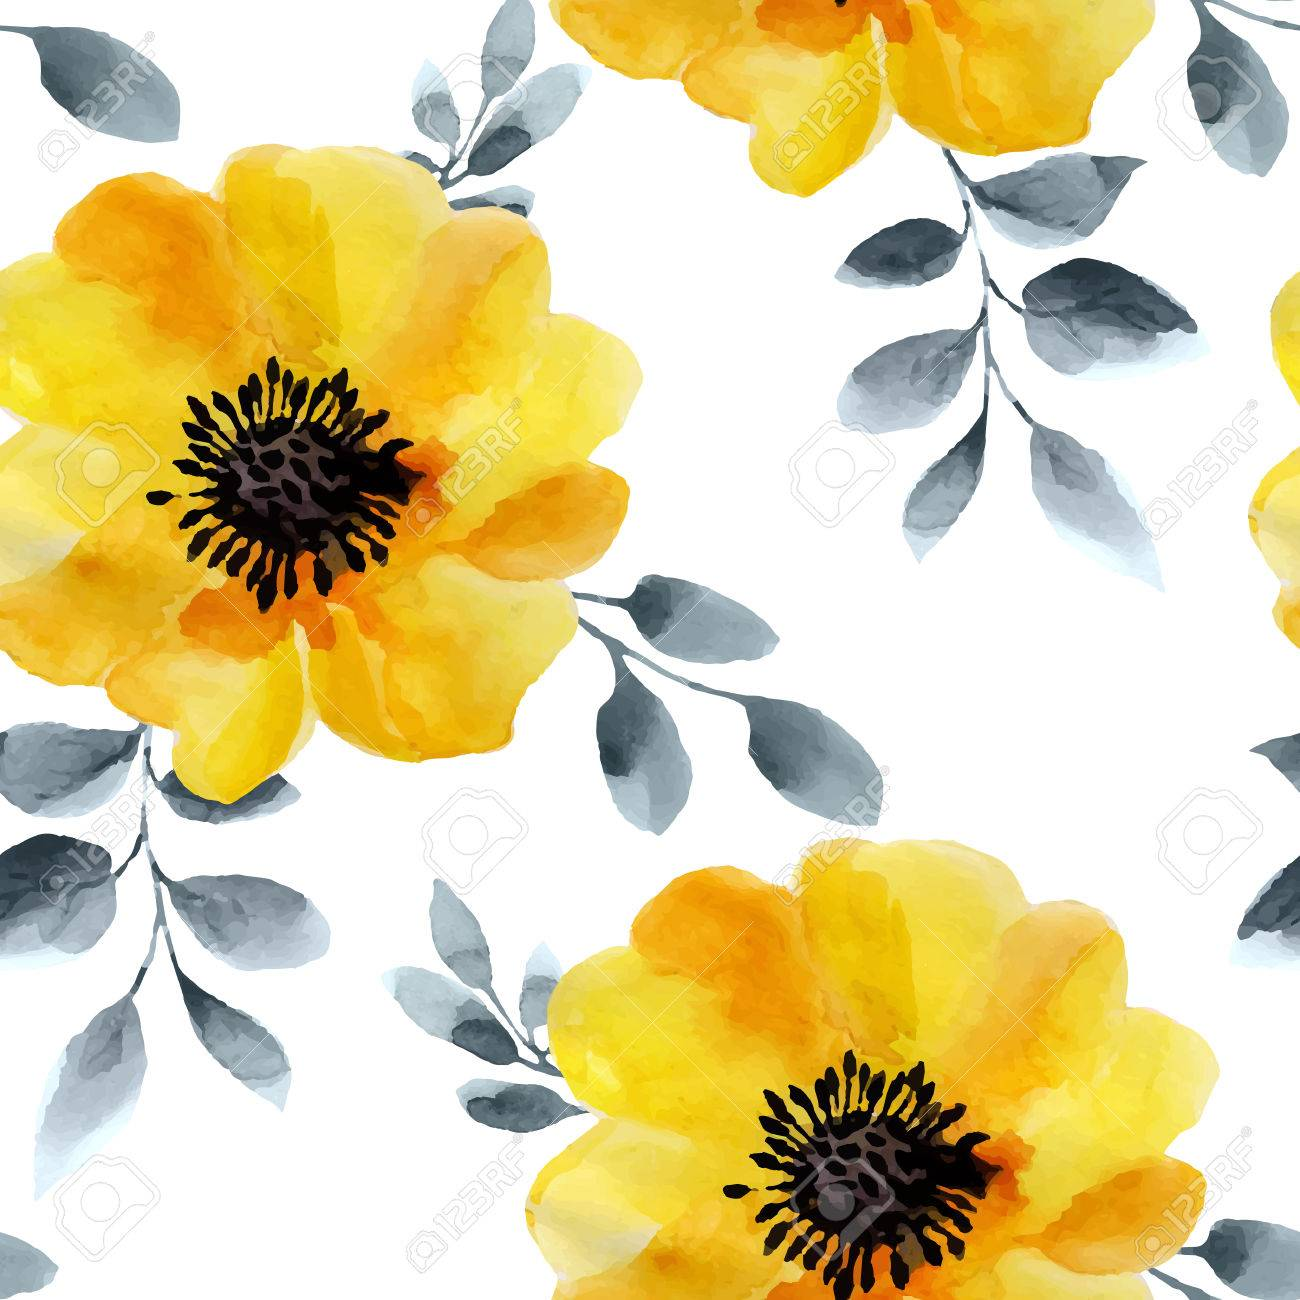 Watercolor flowers seamless pattern. Bright colors watercolor background. - 50536005